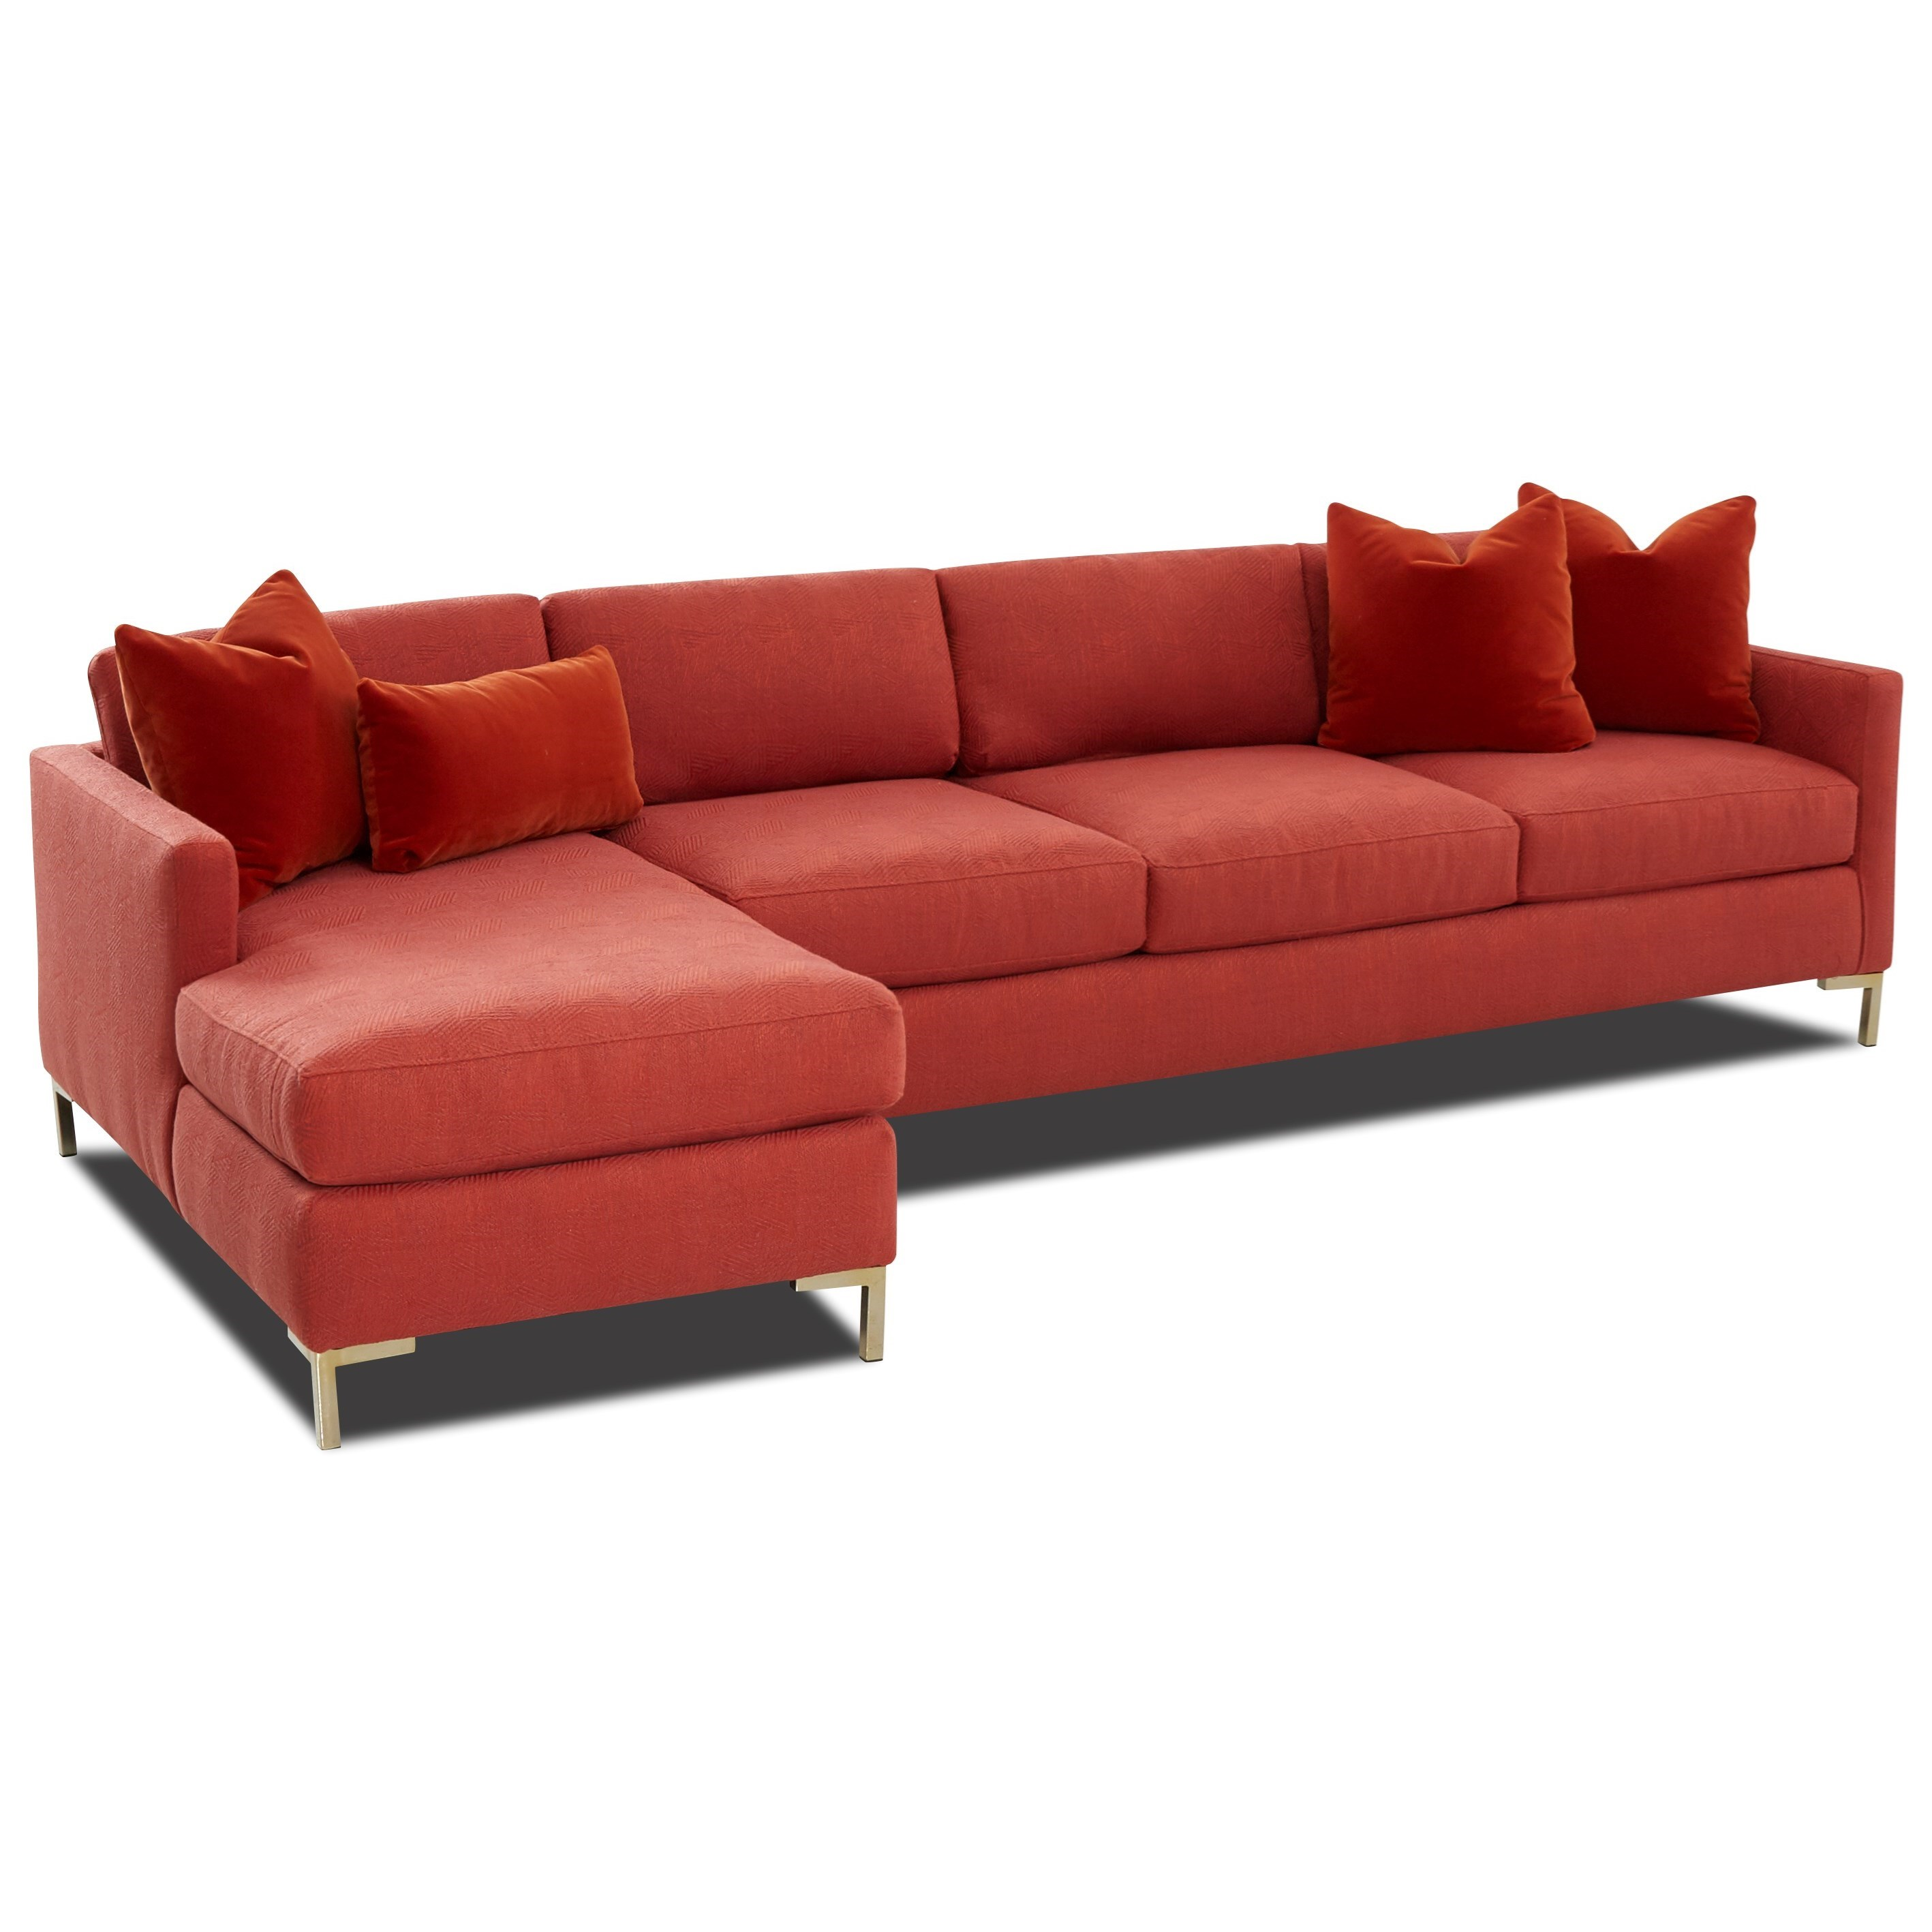 Marisol 4-Seat Sectional Sofa w/ RAF Chaise by Klaussner at Catalog Outlet